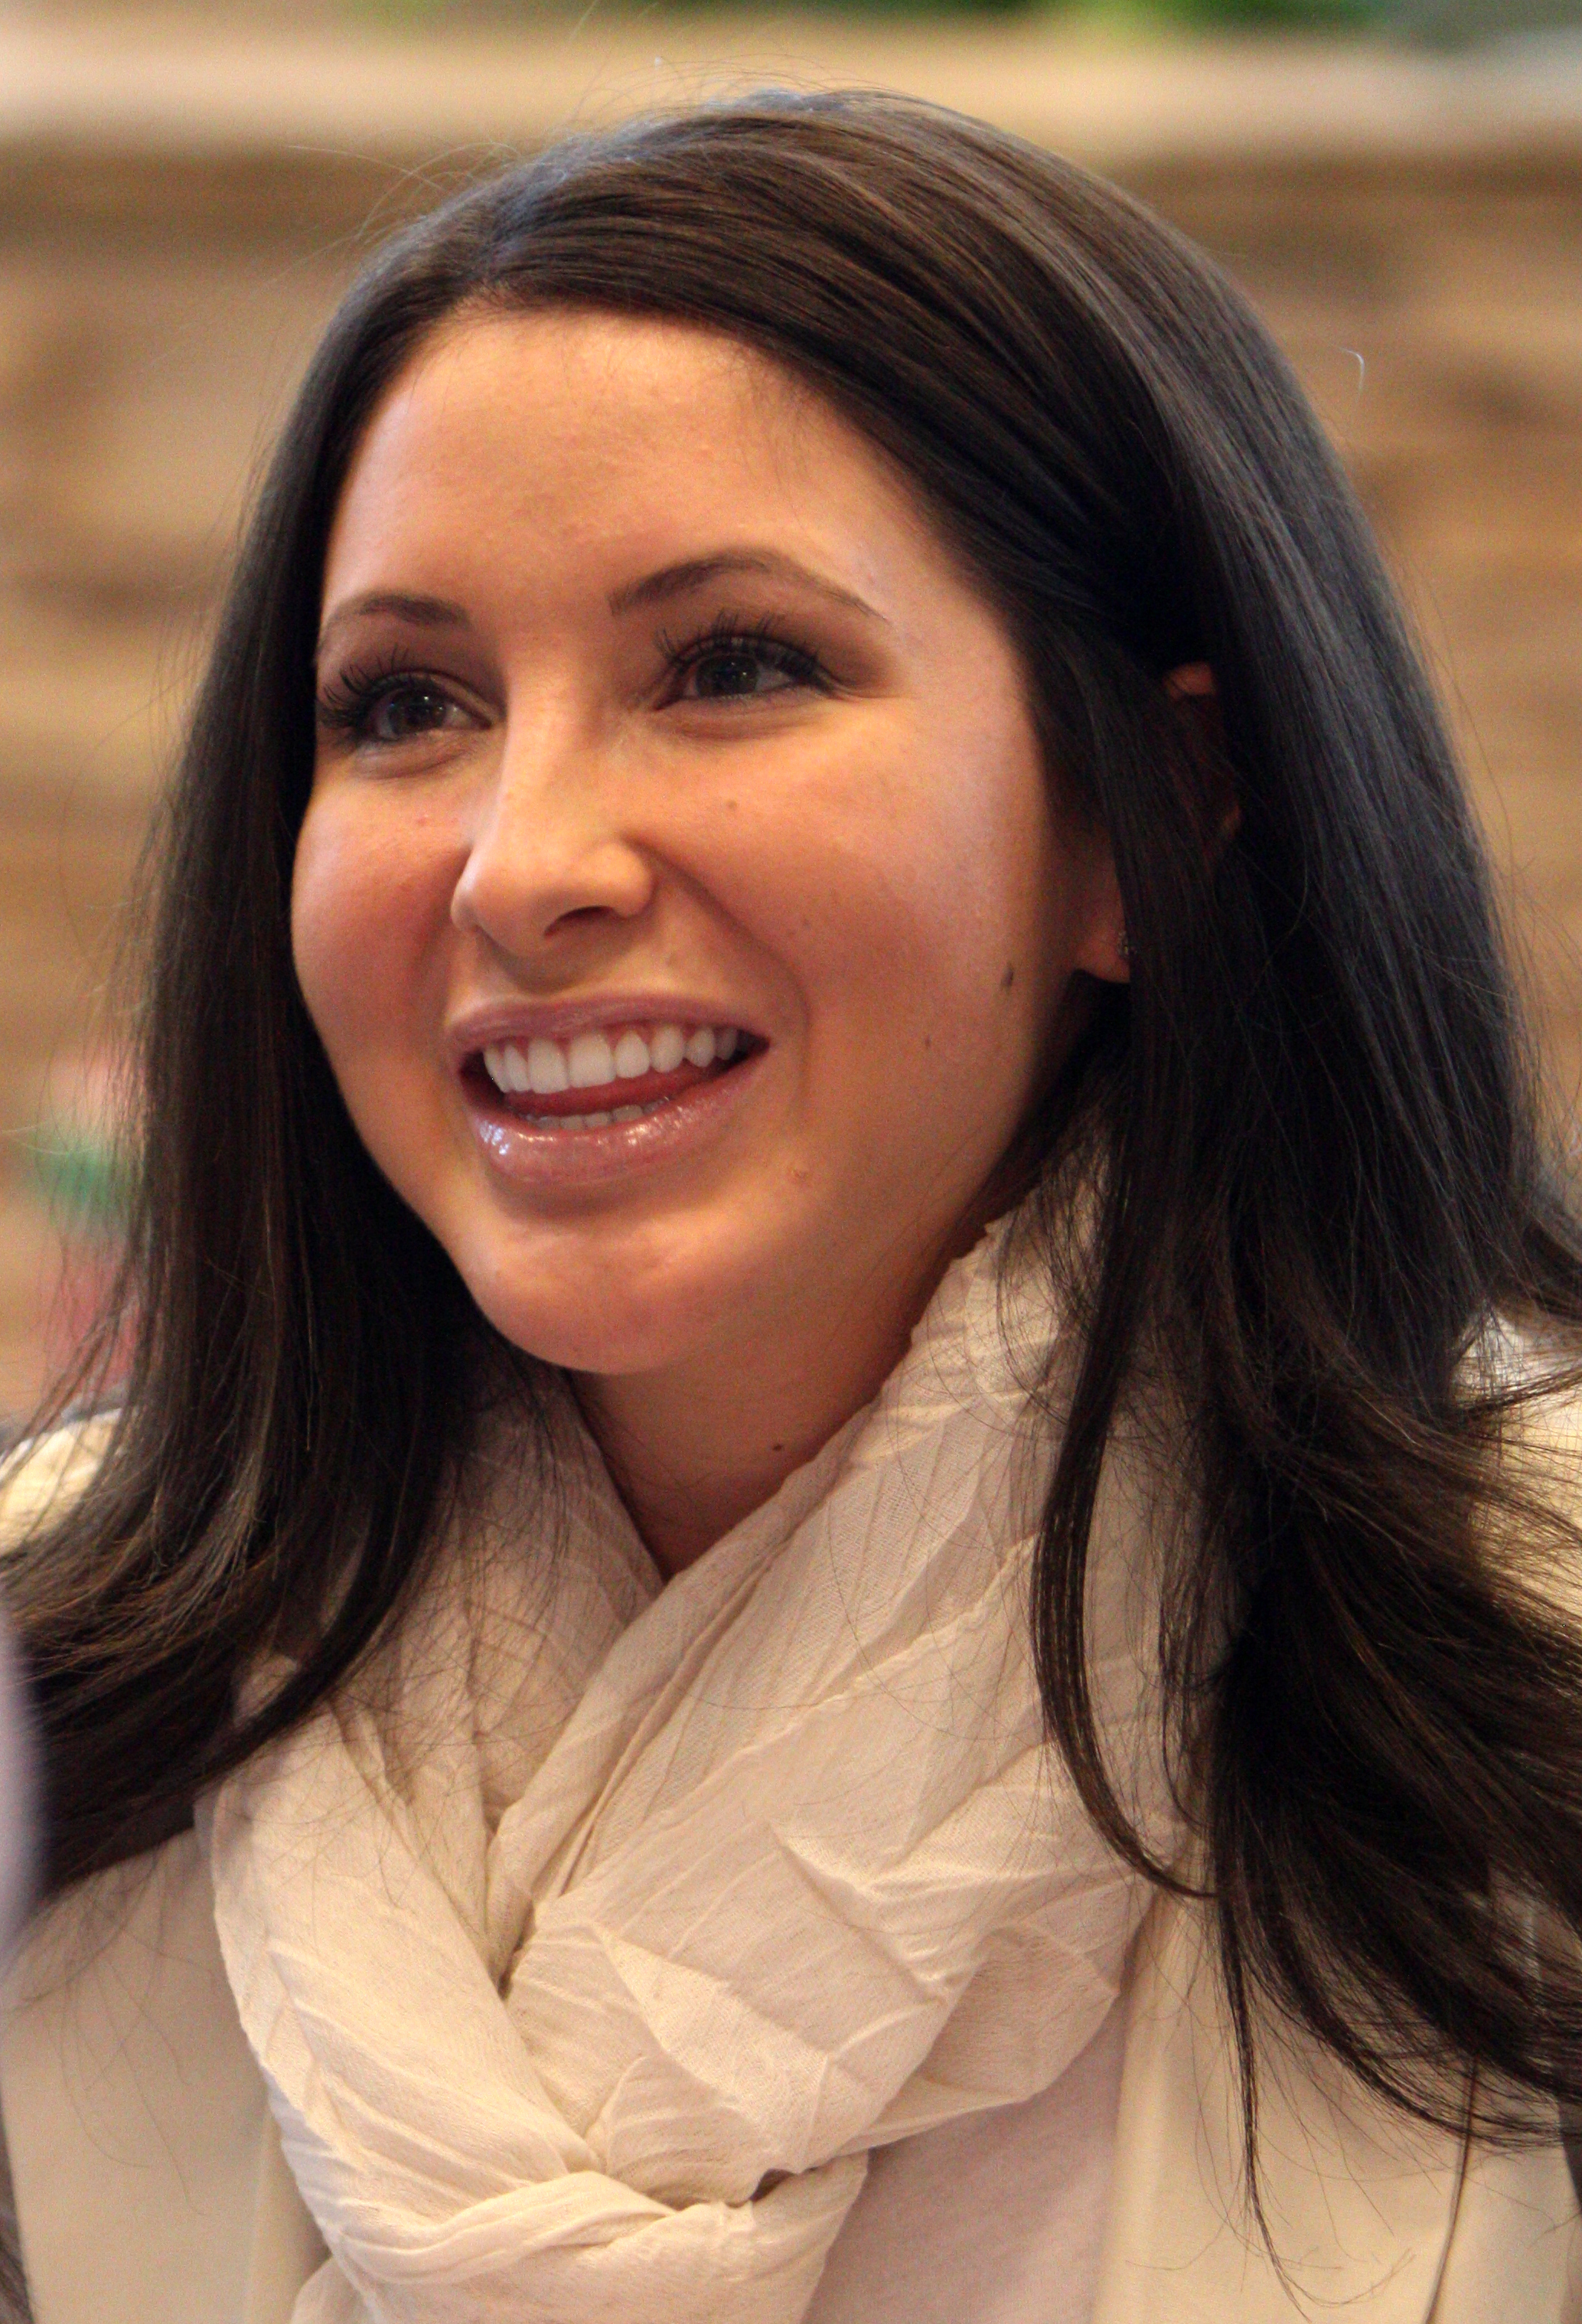 File:Bristol Palin by Gage Skidmore 2.jpg - Wikimedia Commons